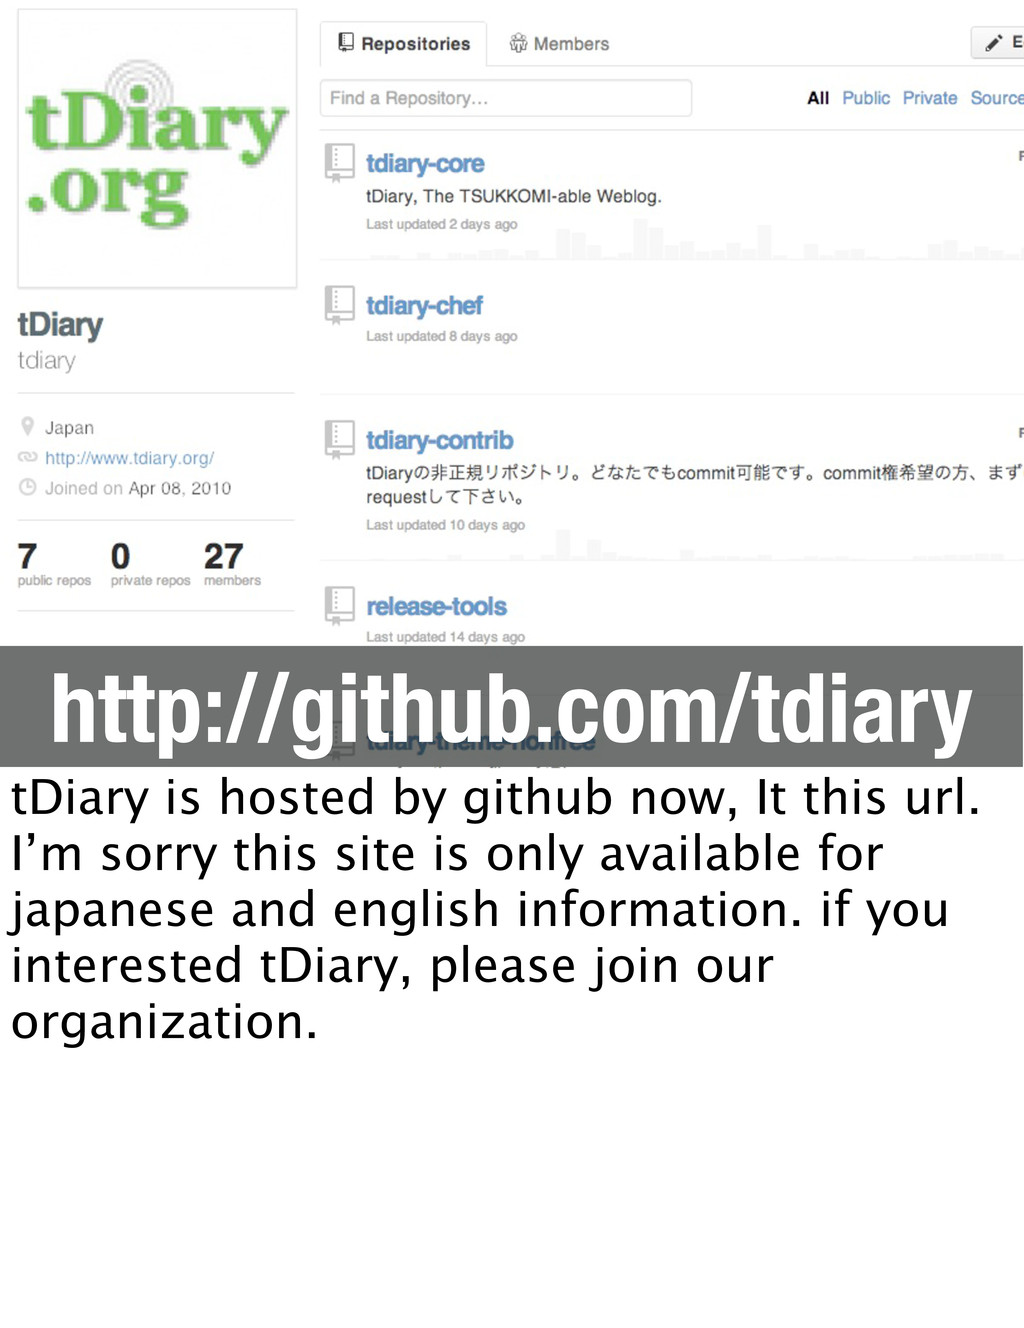 http://github.com/tdiary tDiary is hosted by gi...